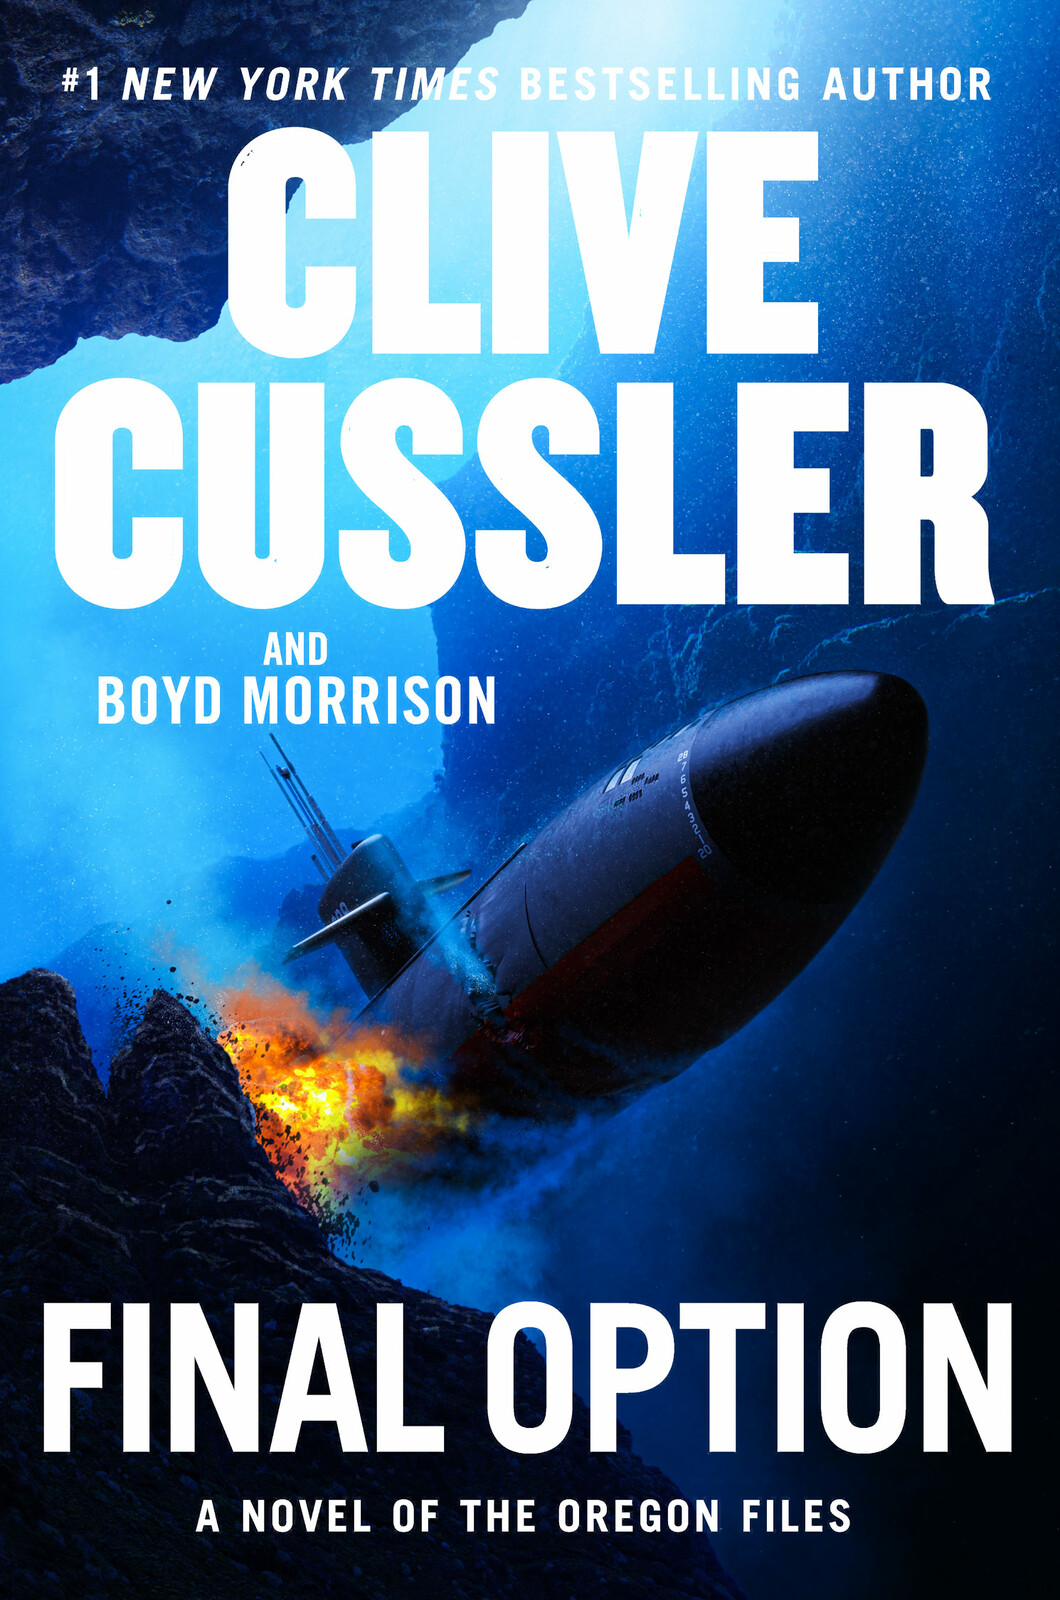 Cliver Cussler : Final Option